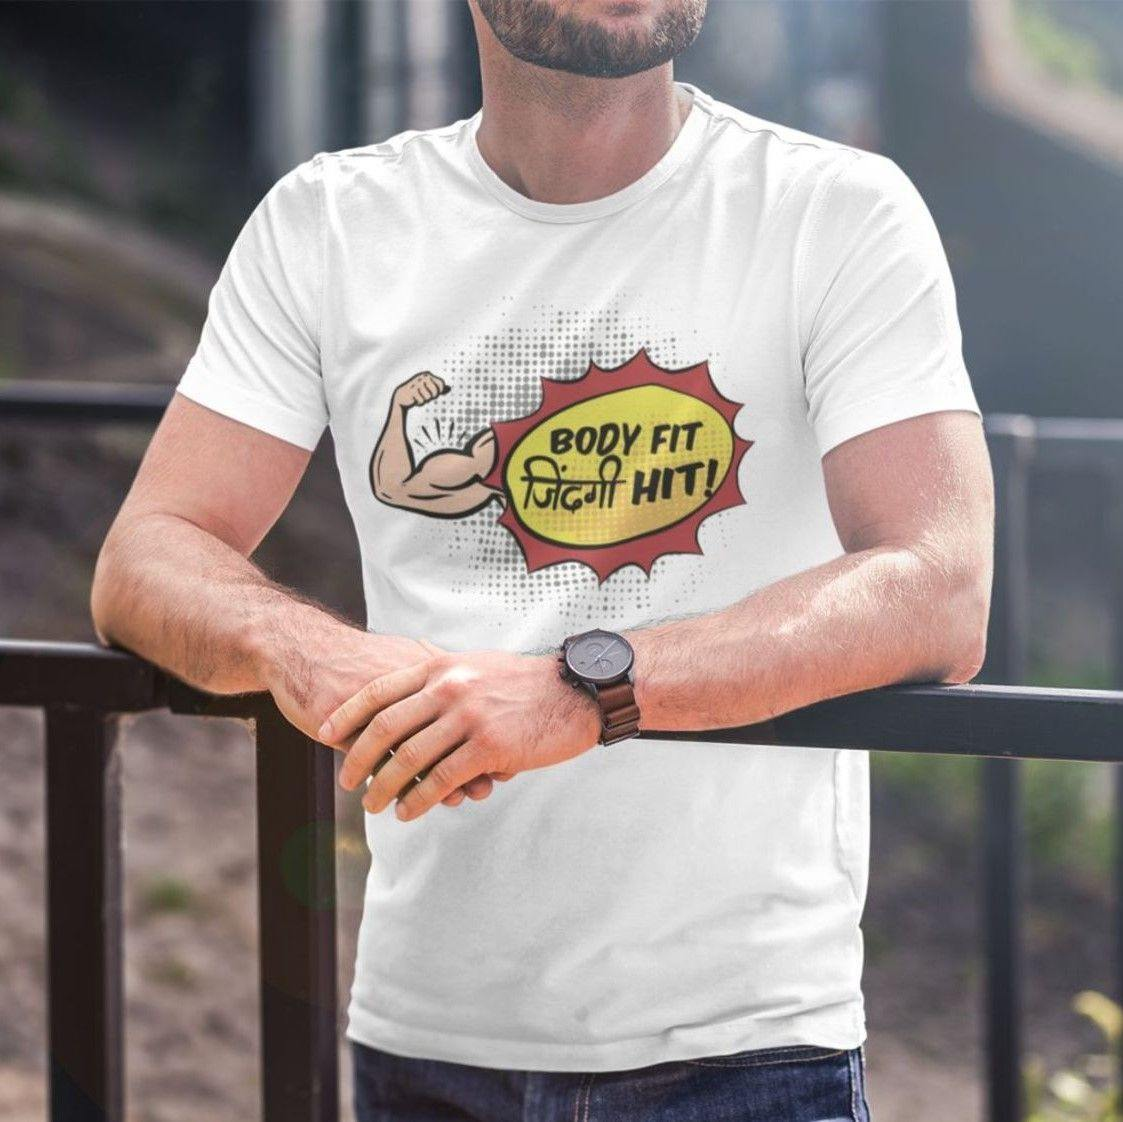 Body Fit, Zindagi Hit - Men's Tshirt - Daily Suvichar Store